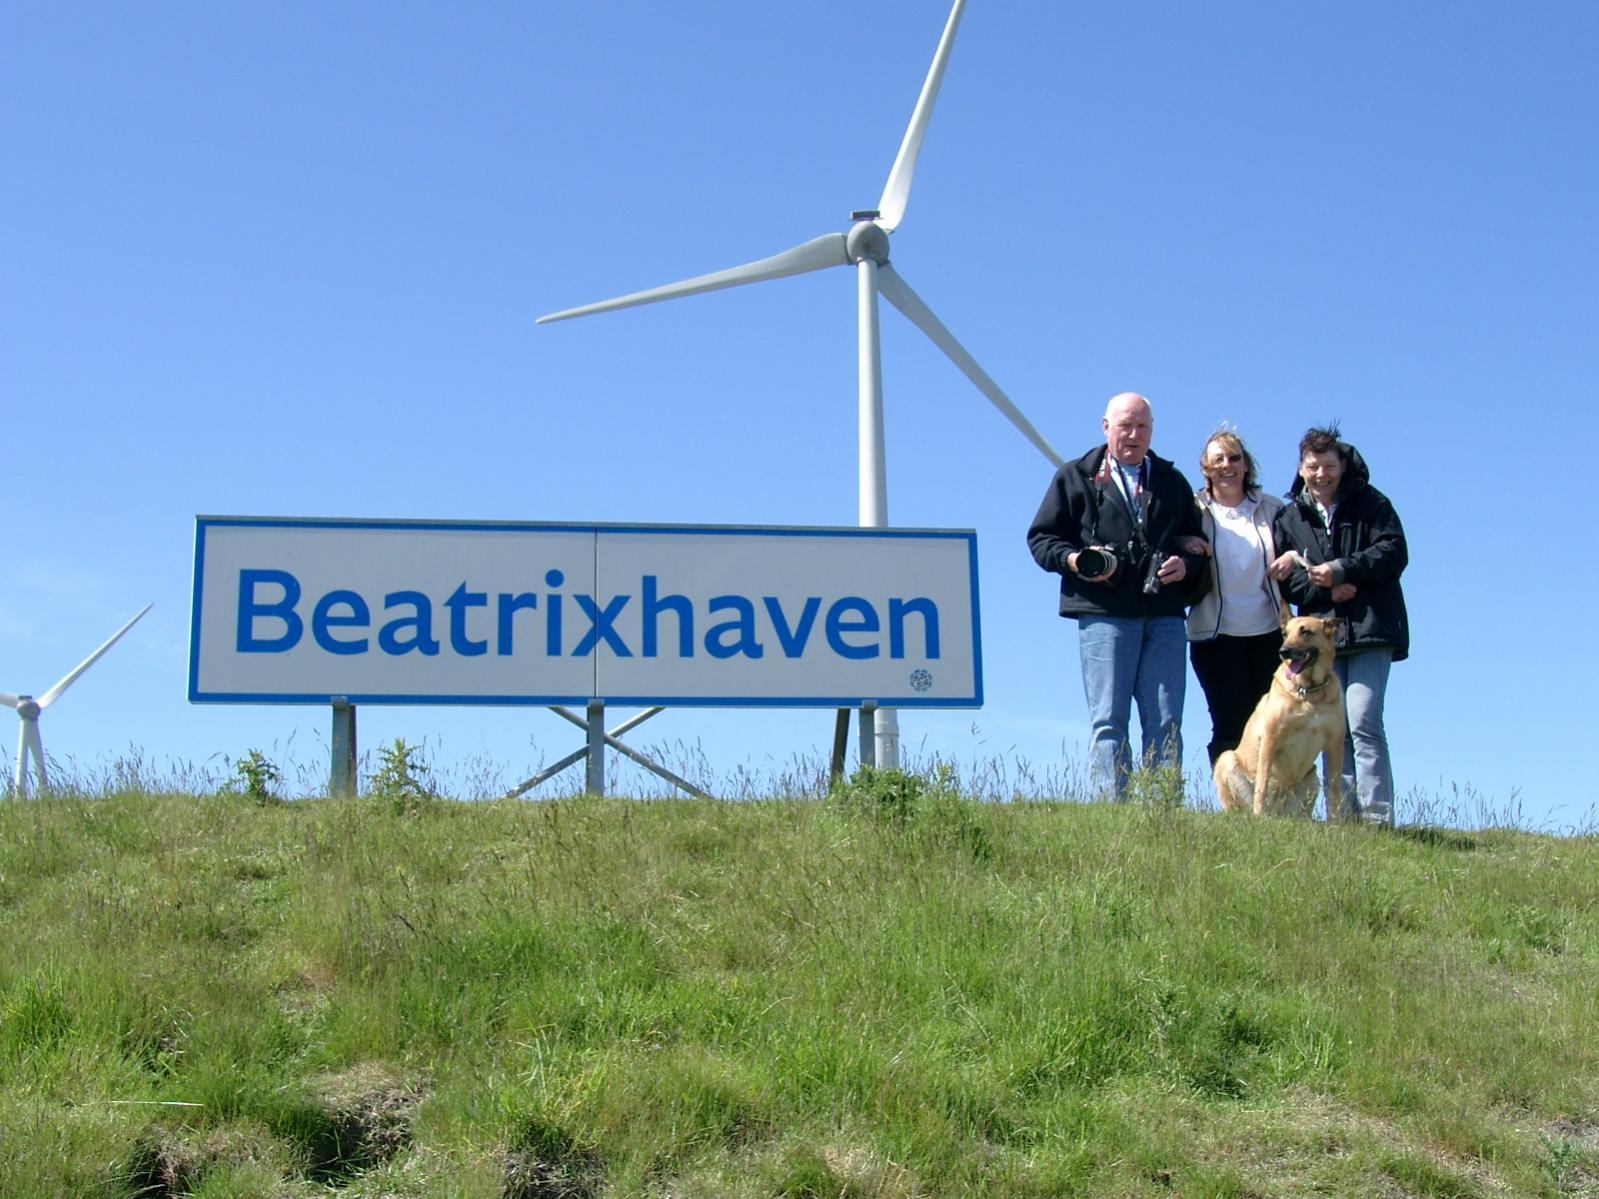 Click image for larger version  Name:NL 020613 Eemshaven the usual suspects.jpg Views:307 Size:219.8 KB ID:1327